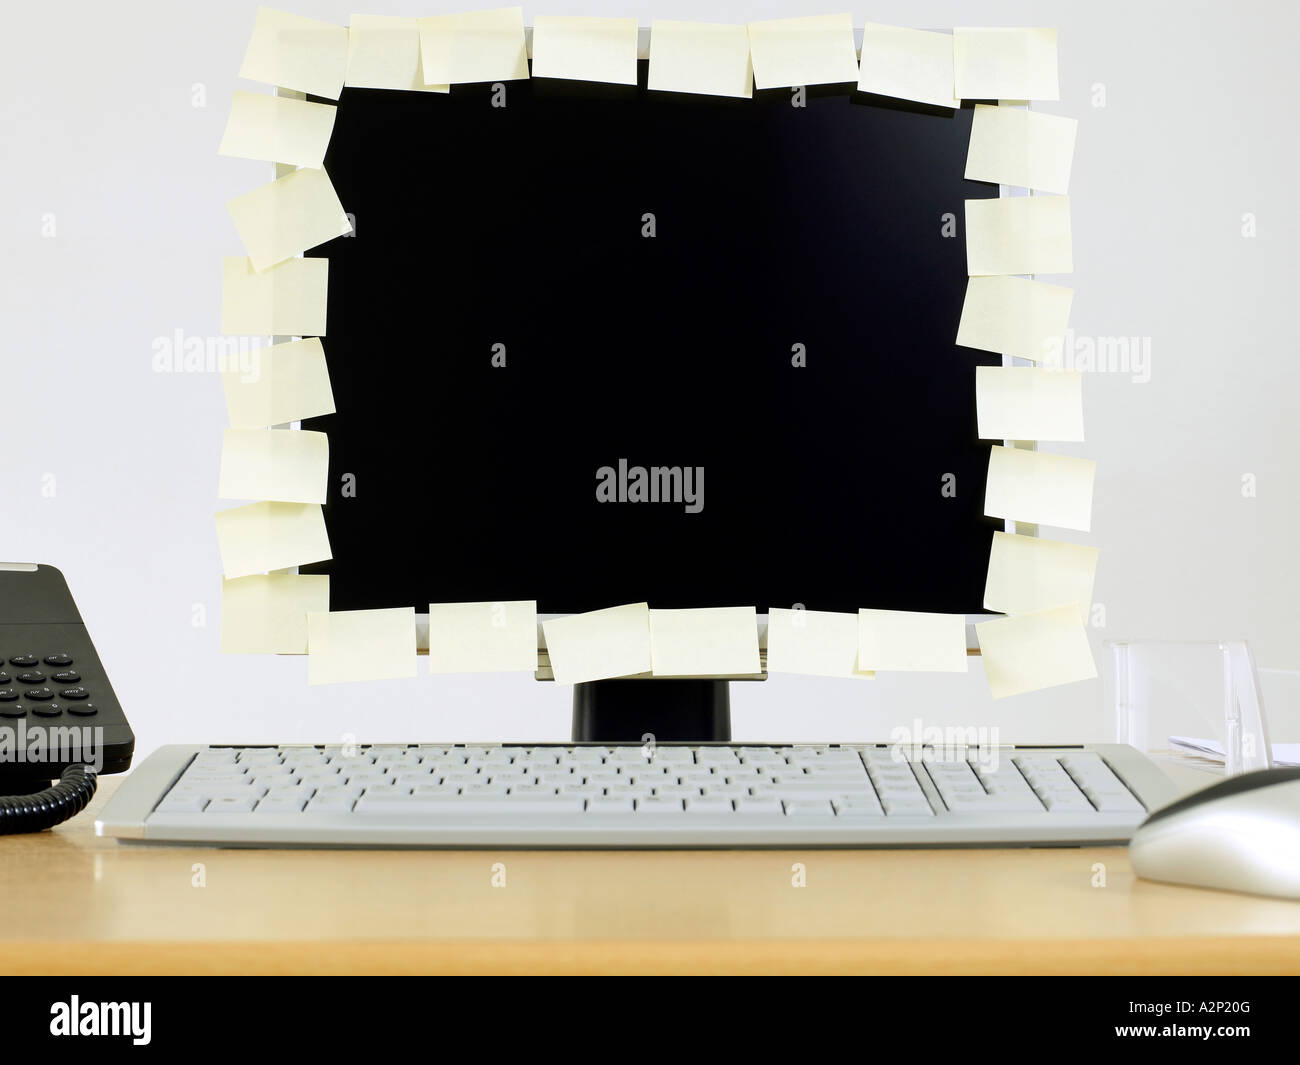 Adhesive notes covering edge of computer monitor - Stock Image